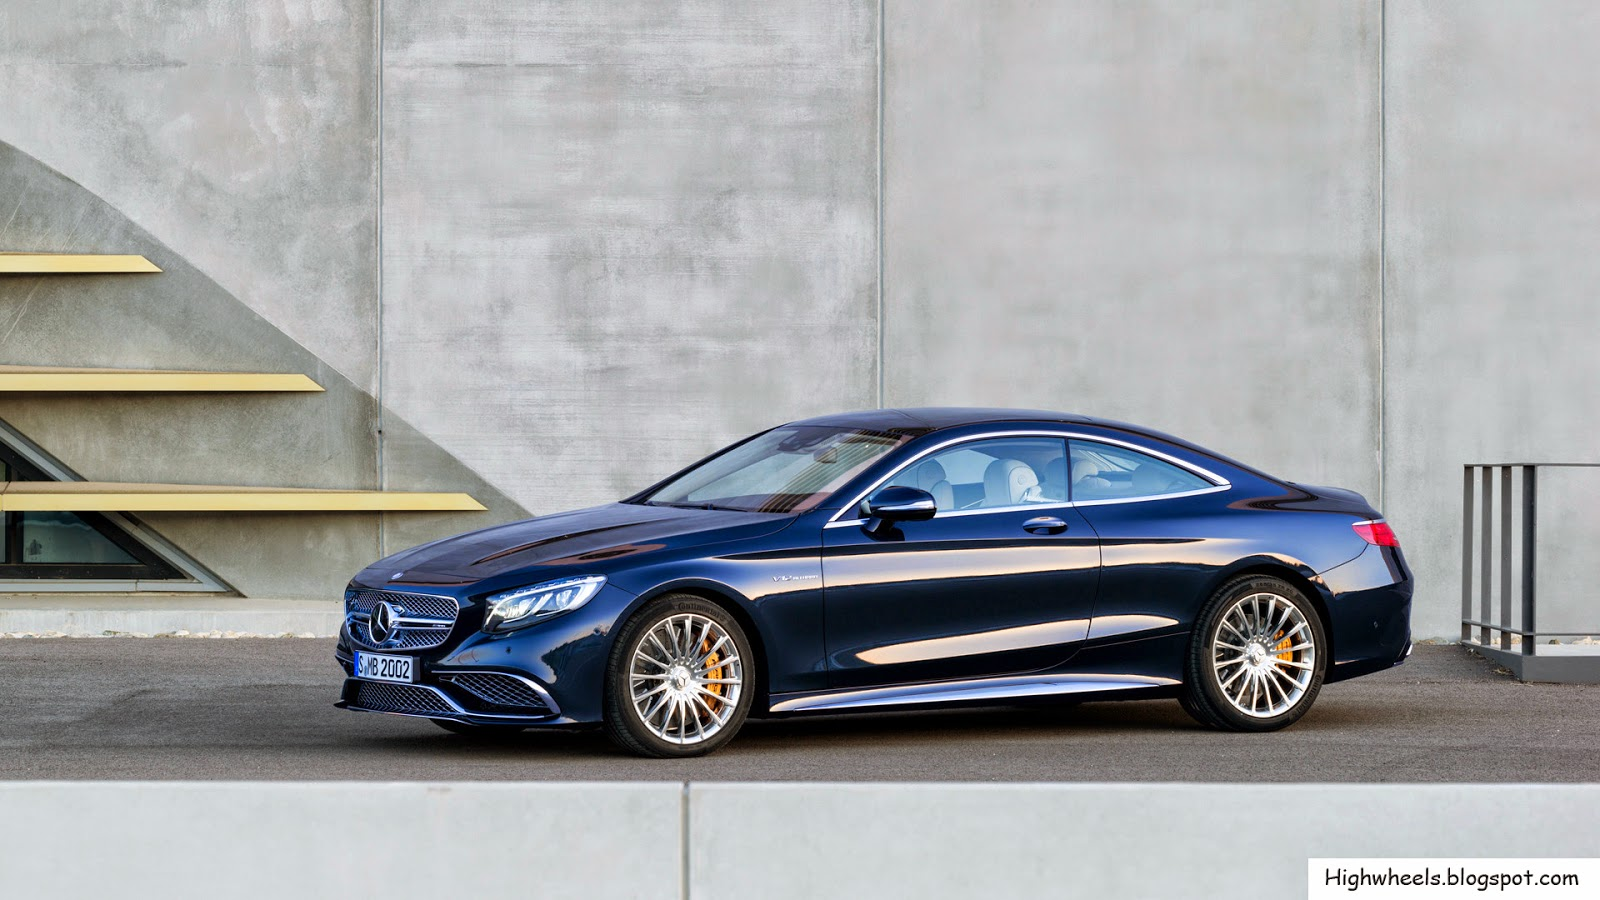 2015 mercedes benz s65 amg coupe high wheels for 2015 mercedes benz s65